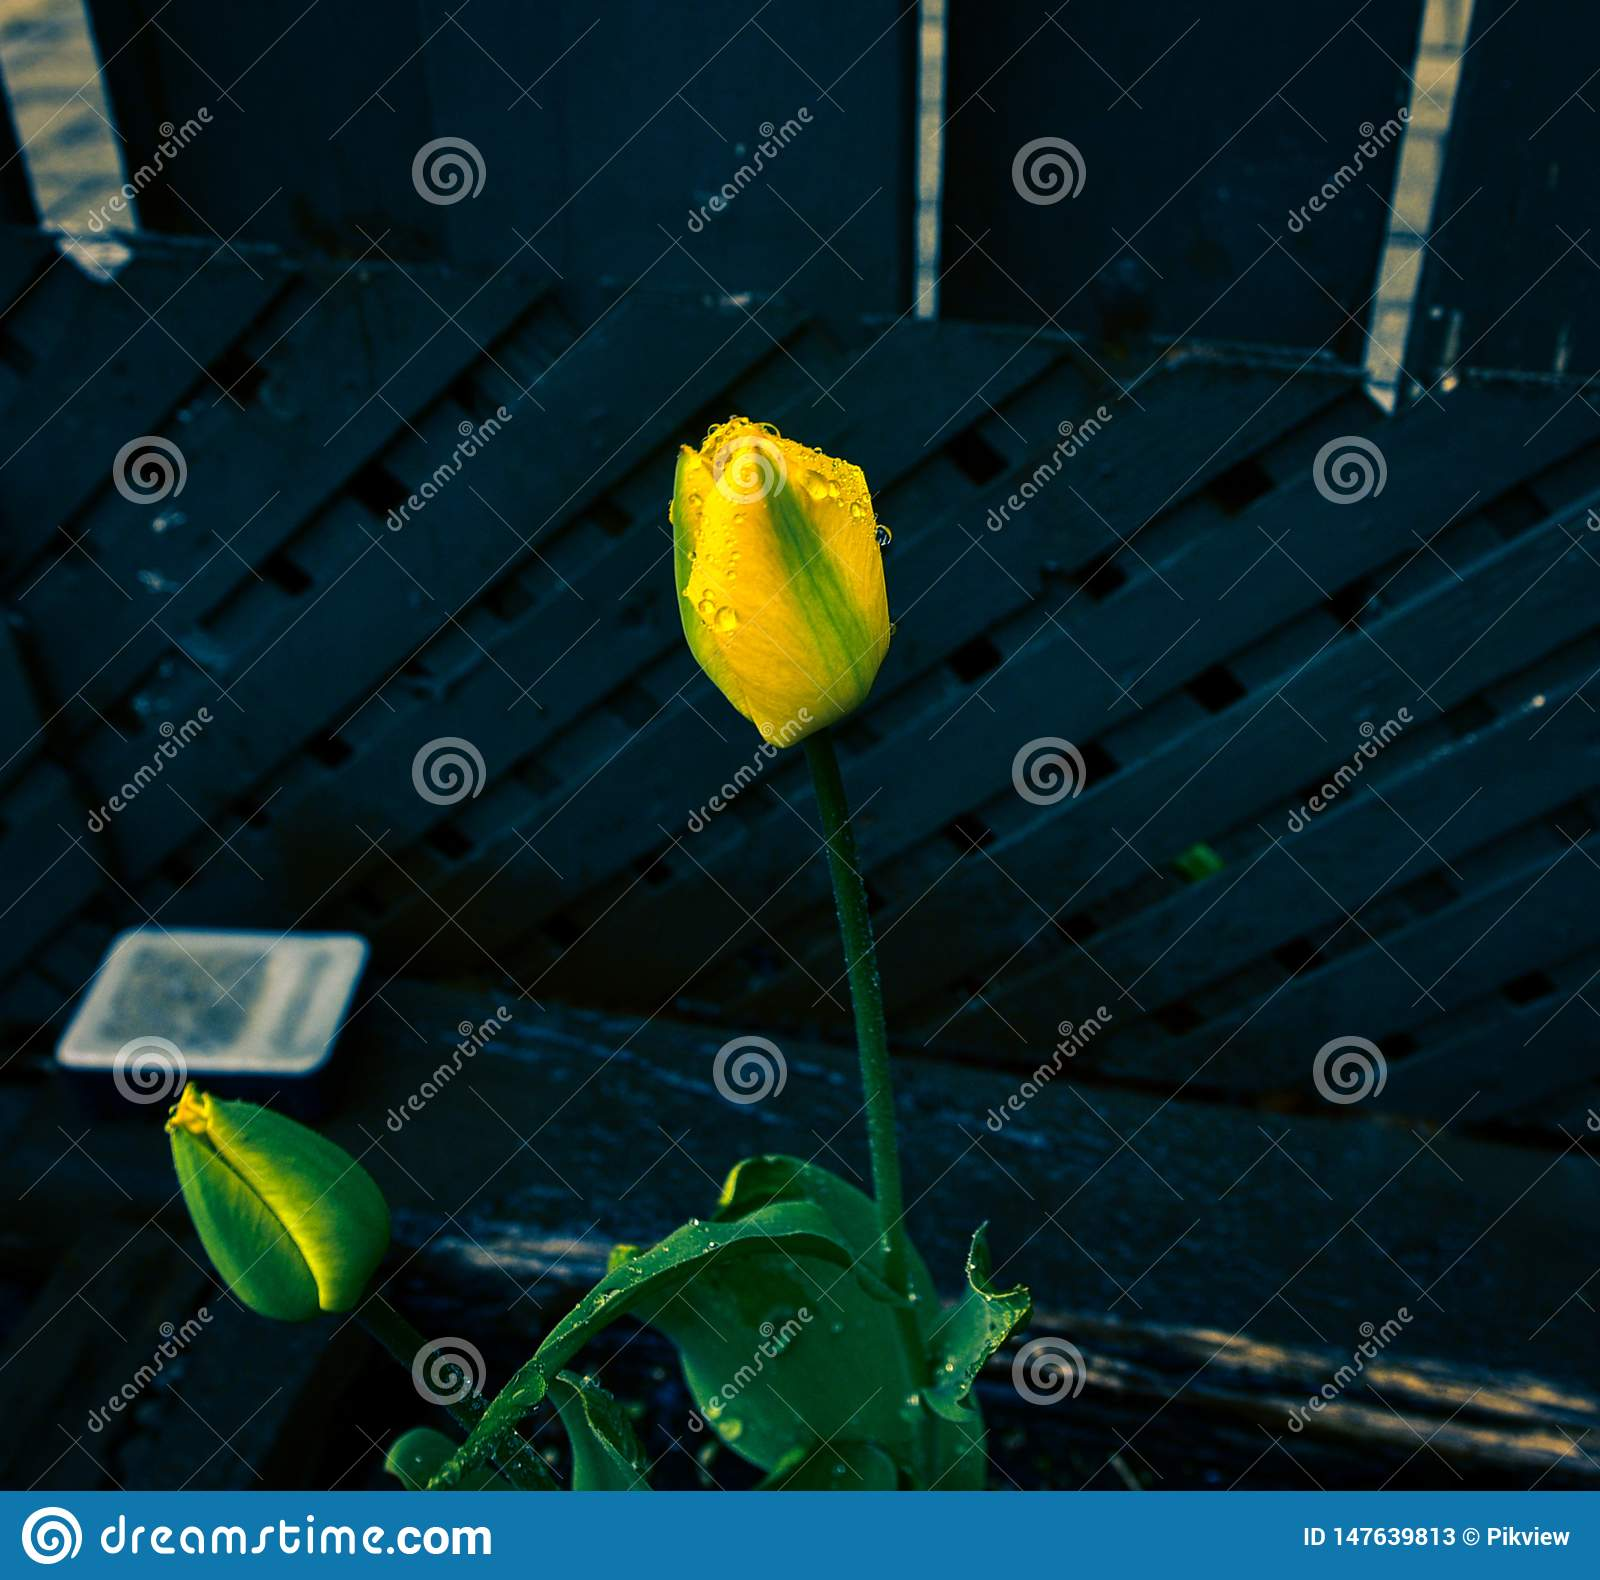 Best looking blue background with yellow flowers